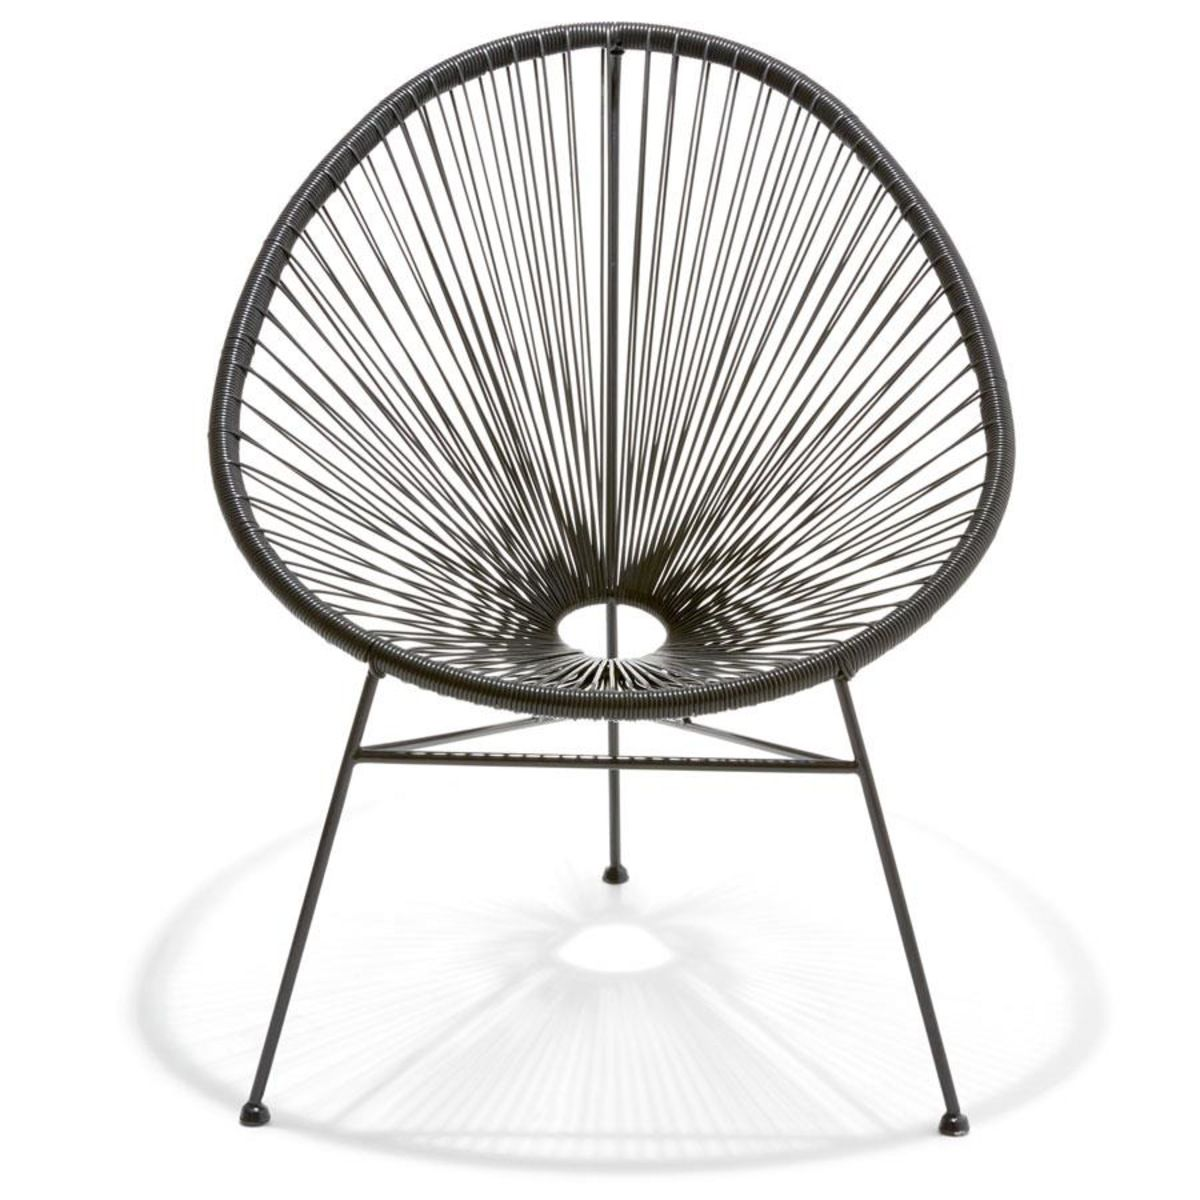 Acapulco Rep. Chair Bk home & Co. Available in Kmart  Feb 12